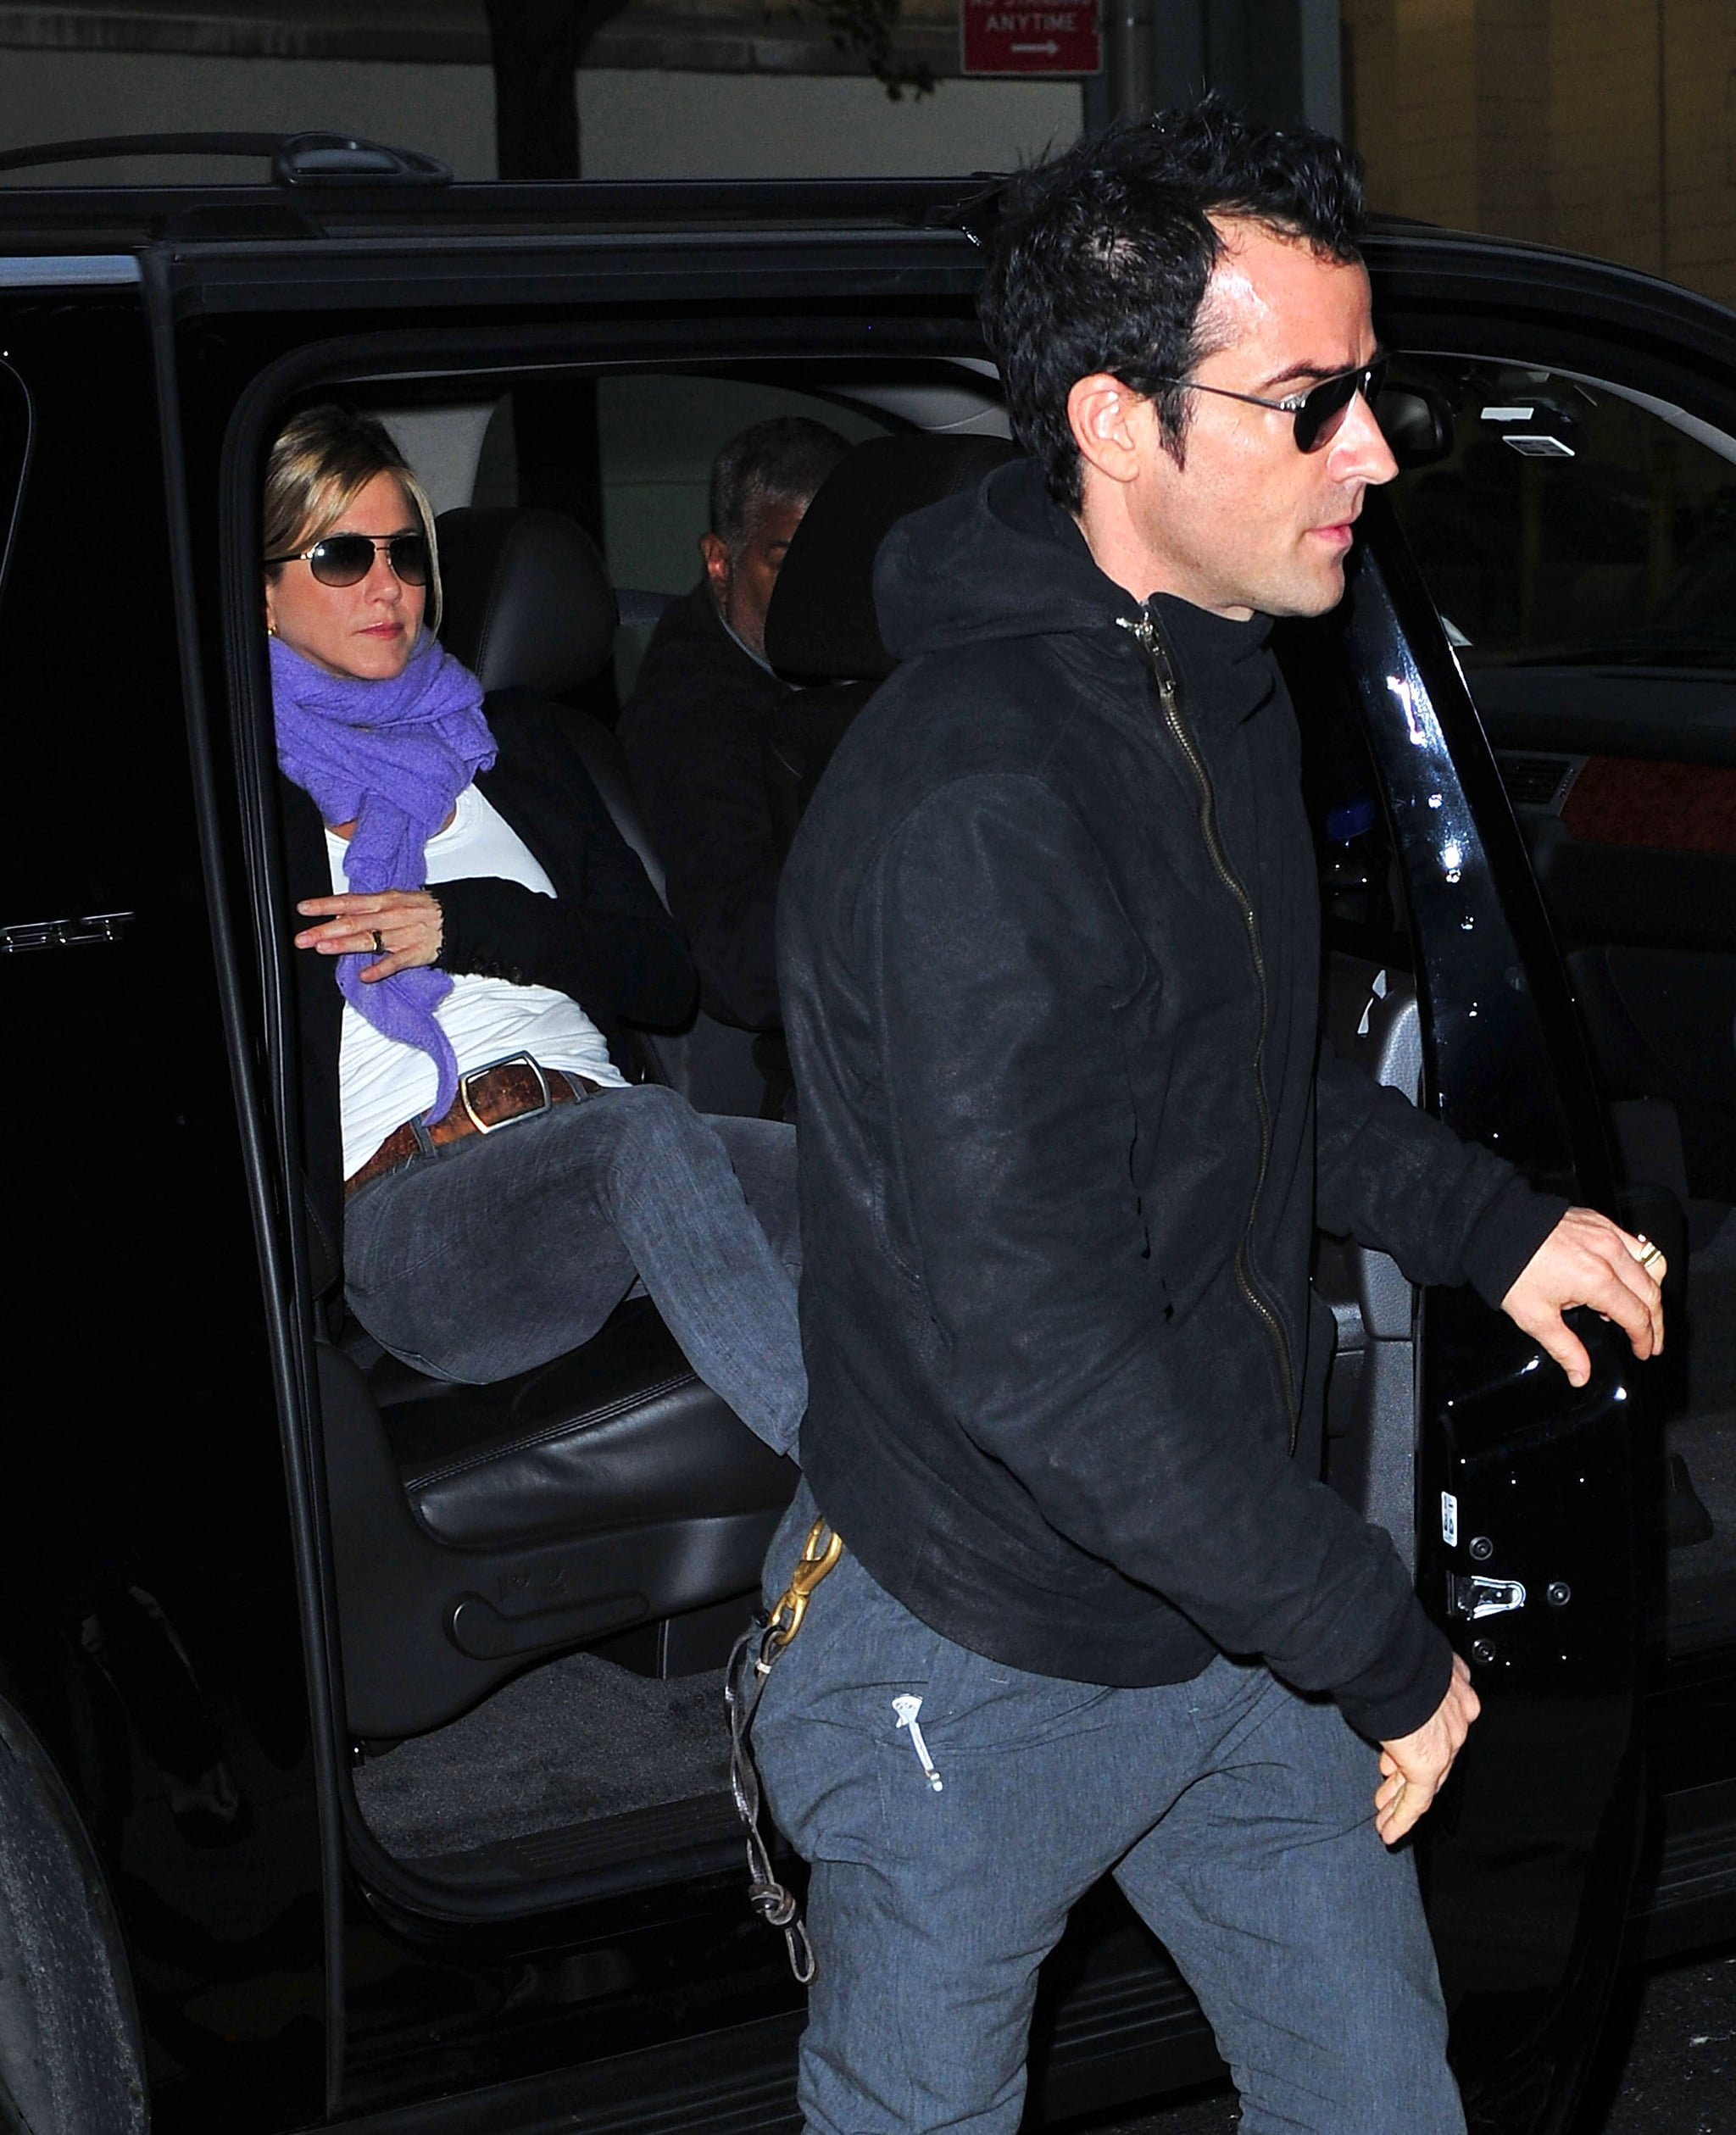 Jennifer Aniston and Justin Theroux stepped out of their car.